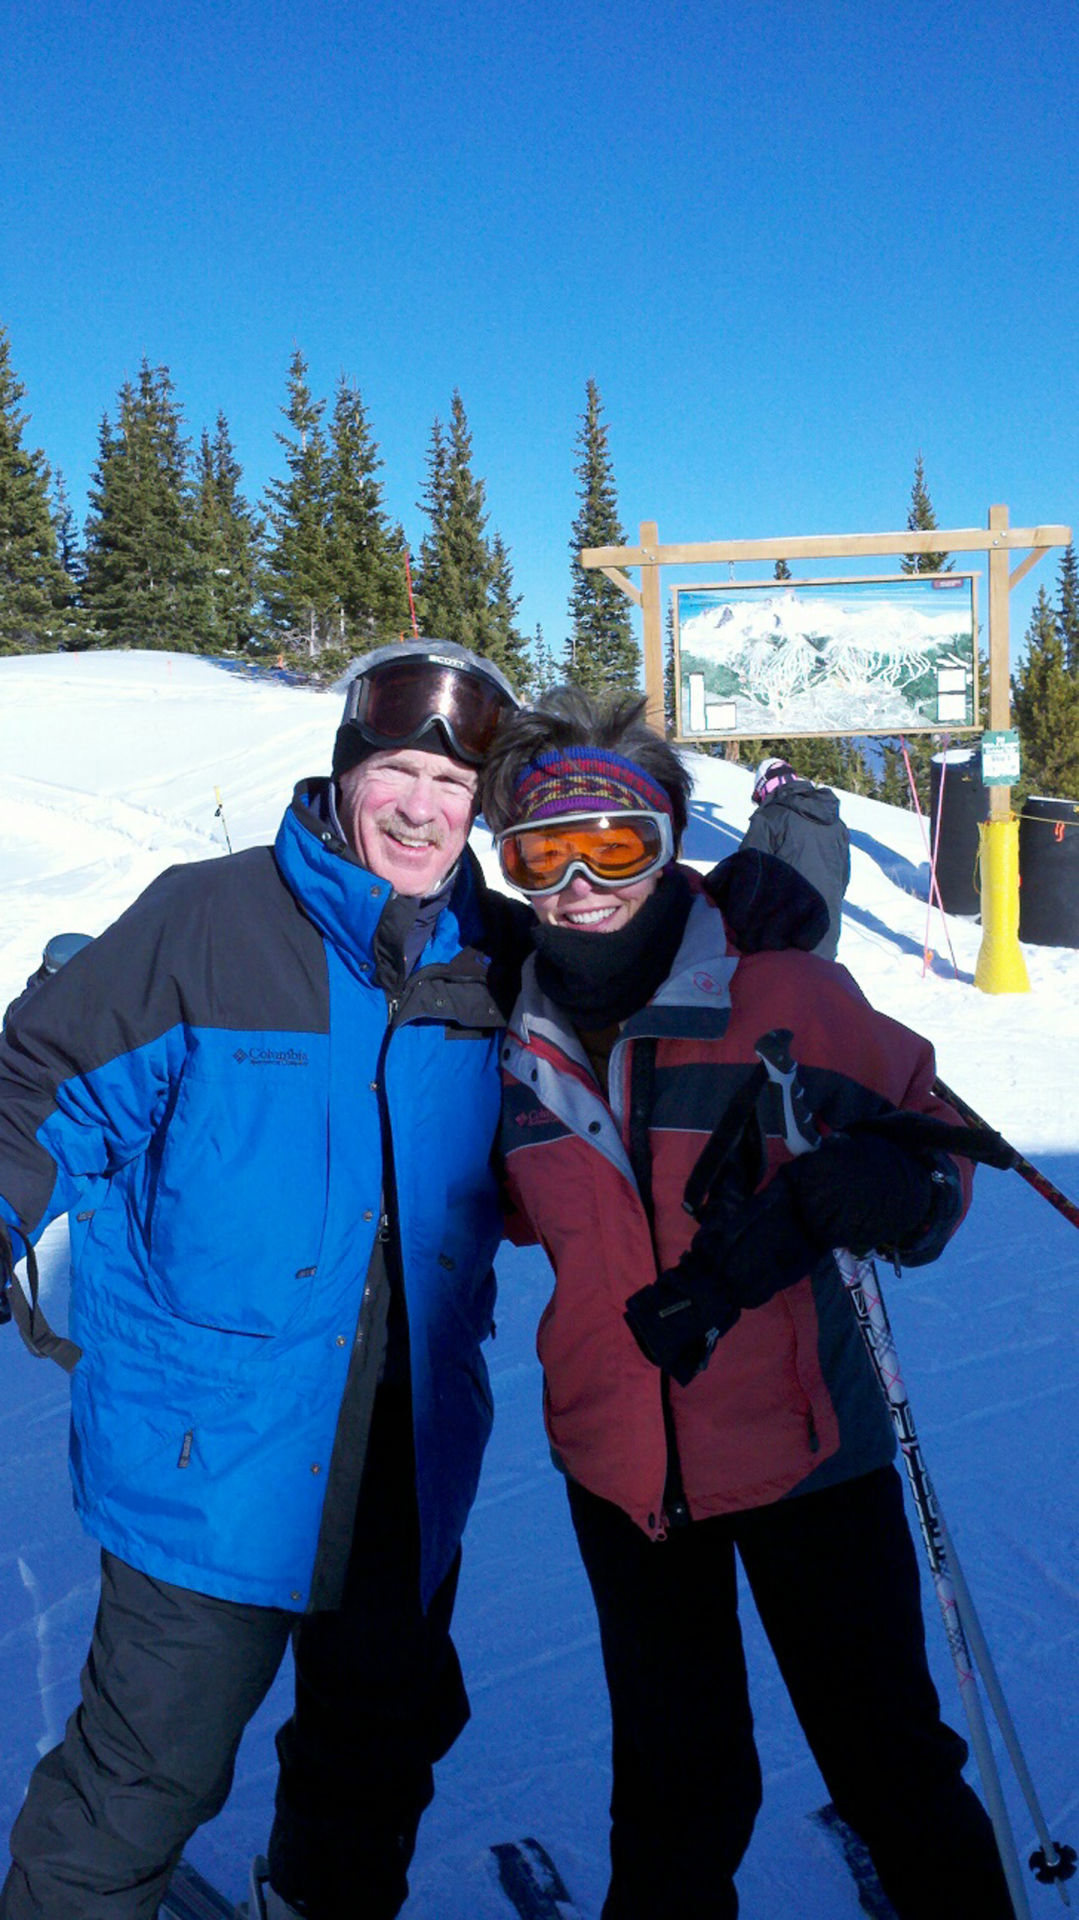 Dr. Carroll and wife skiiing